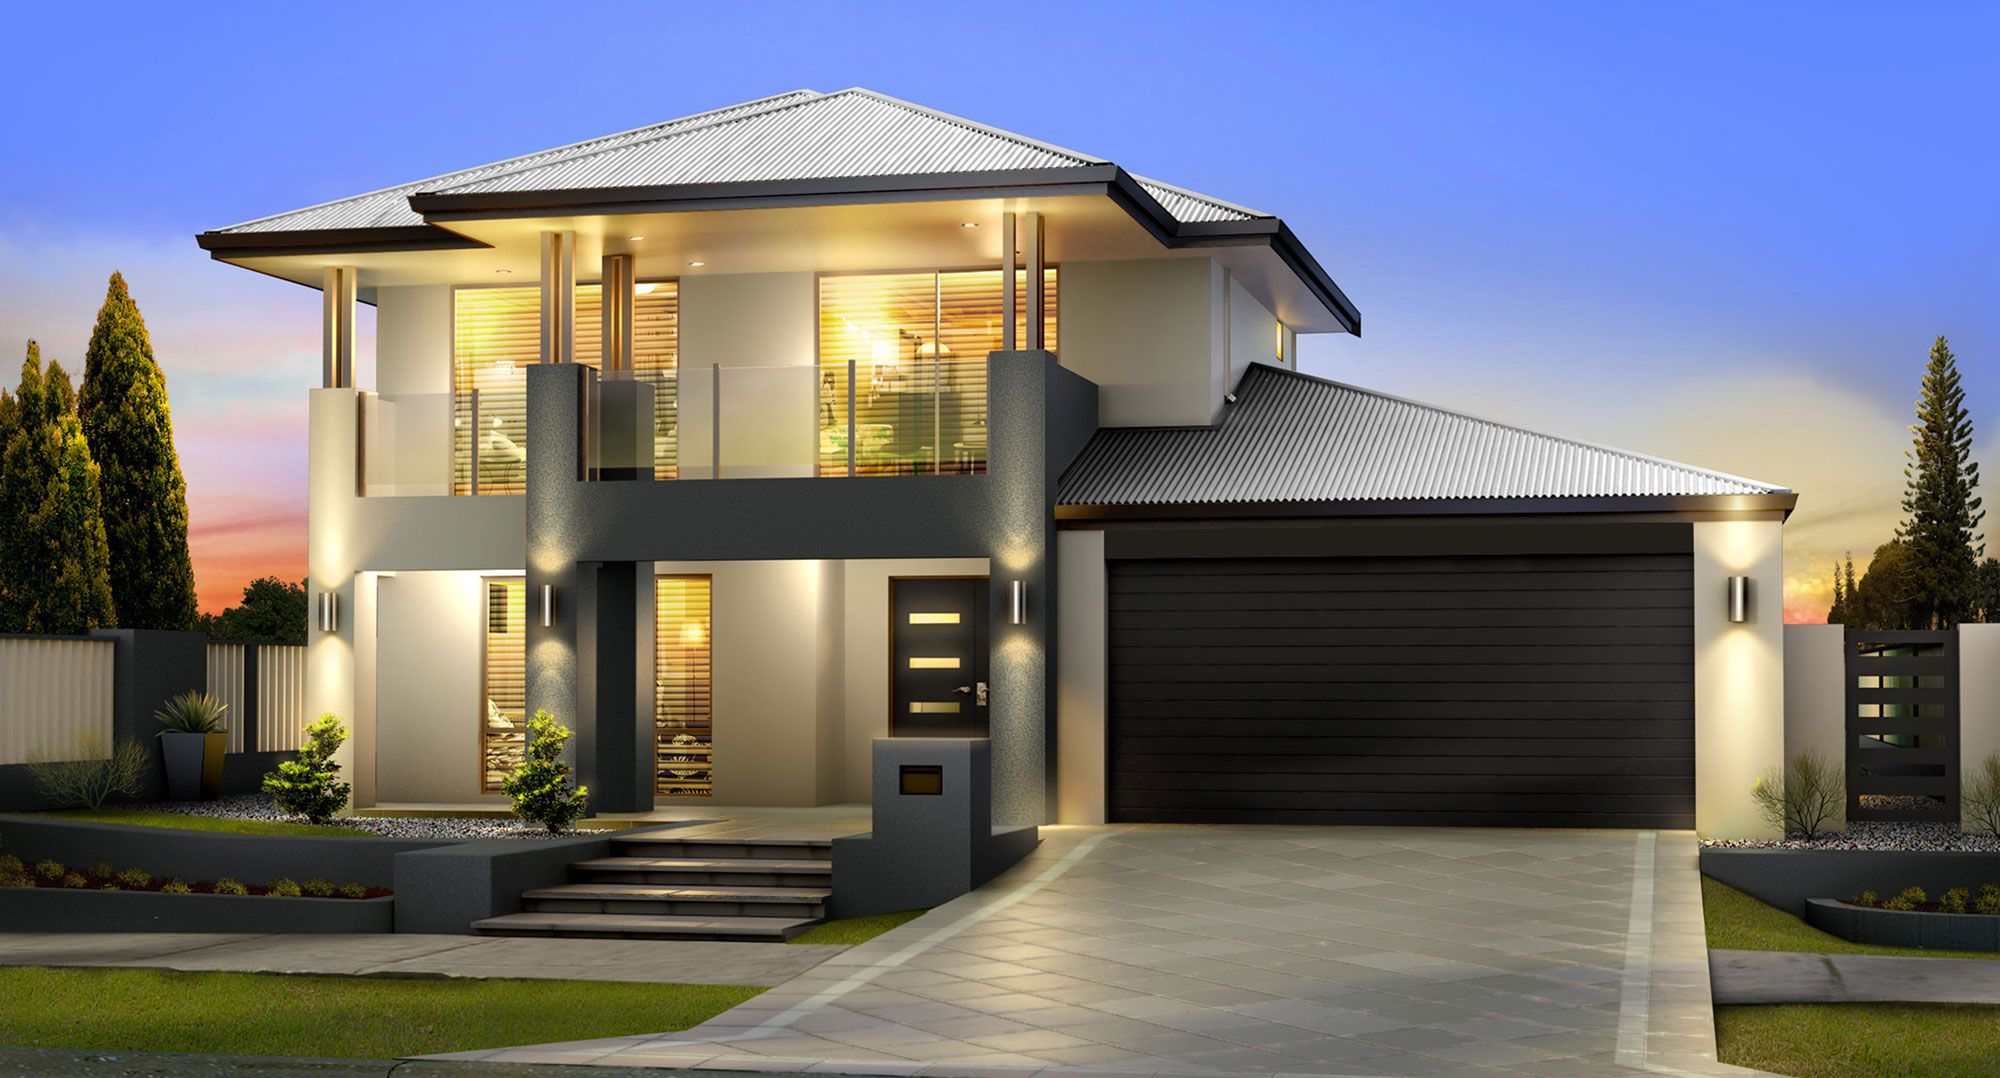 The San Marco Classic 2 Storey Homes Mandurah Perth Wa Modern Style House Plans House Designs Exterior Two Story House Design